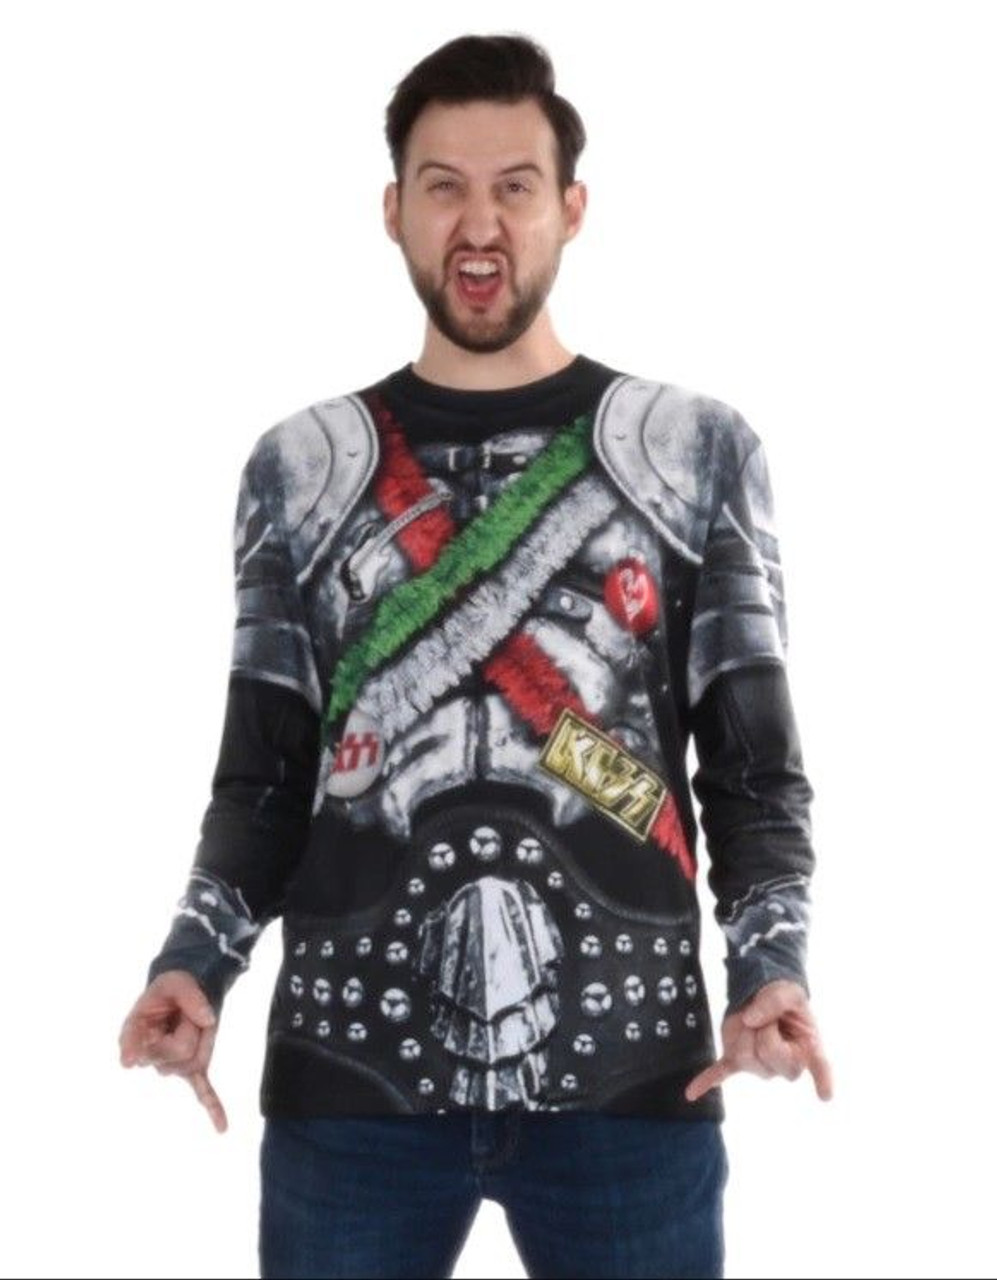 b68ba3df341d Faux Real Kiss The Demon Ugly Xmas Christmas Sweater Shirt Costume F152423  - Fearless Apparel